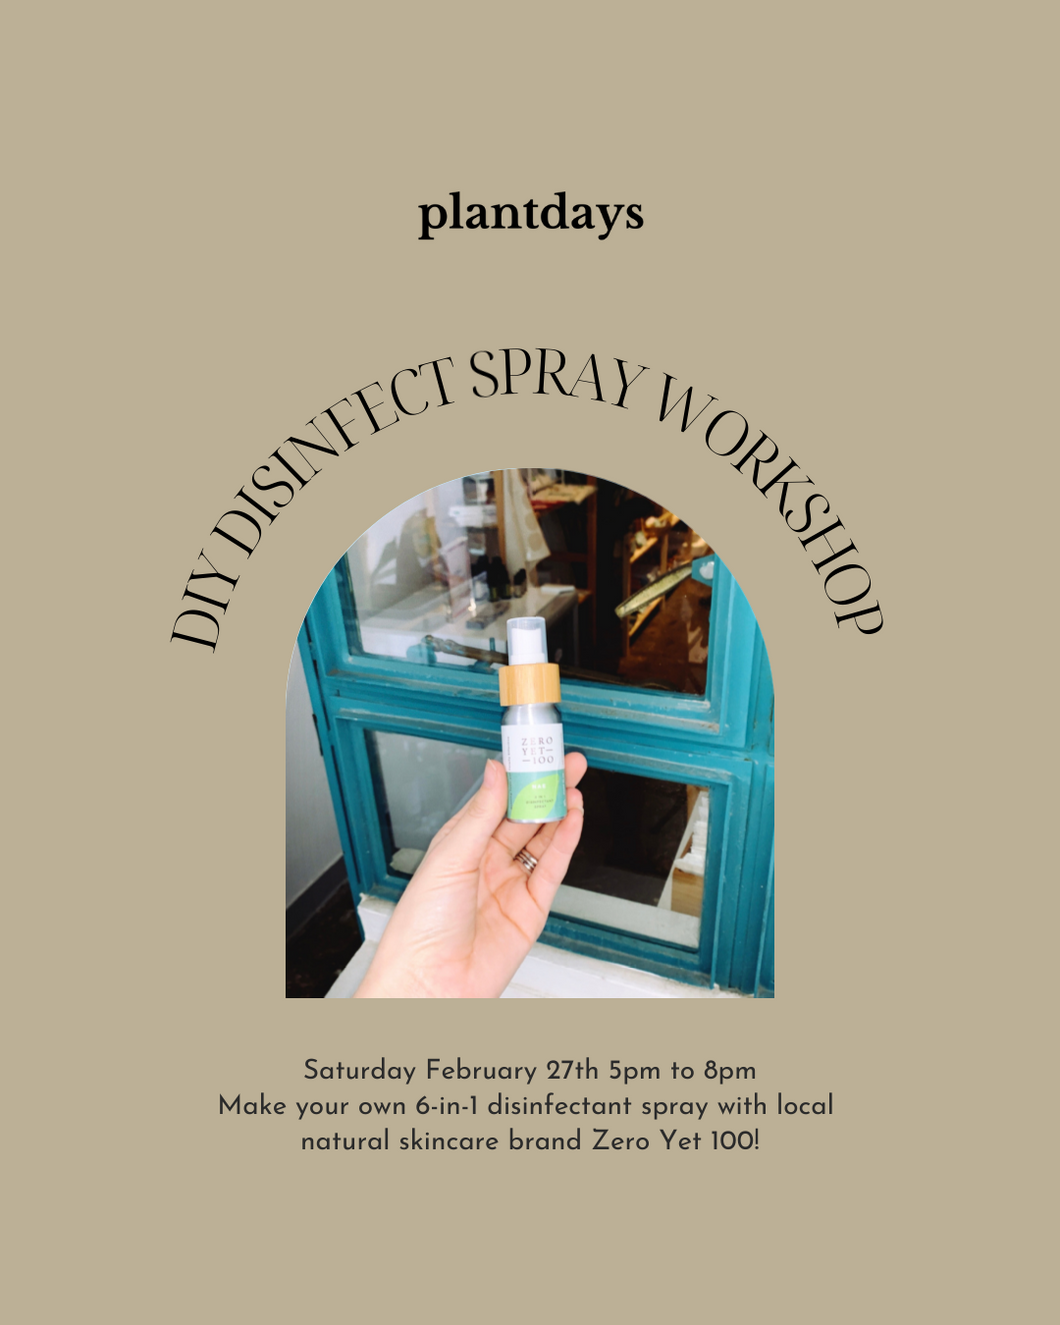 DIY disinfectant spray workshop with Zero Yet 100